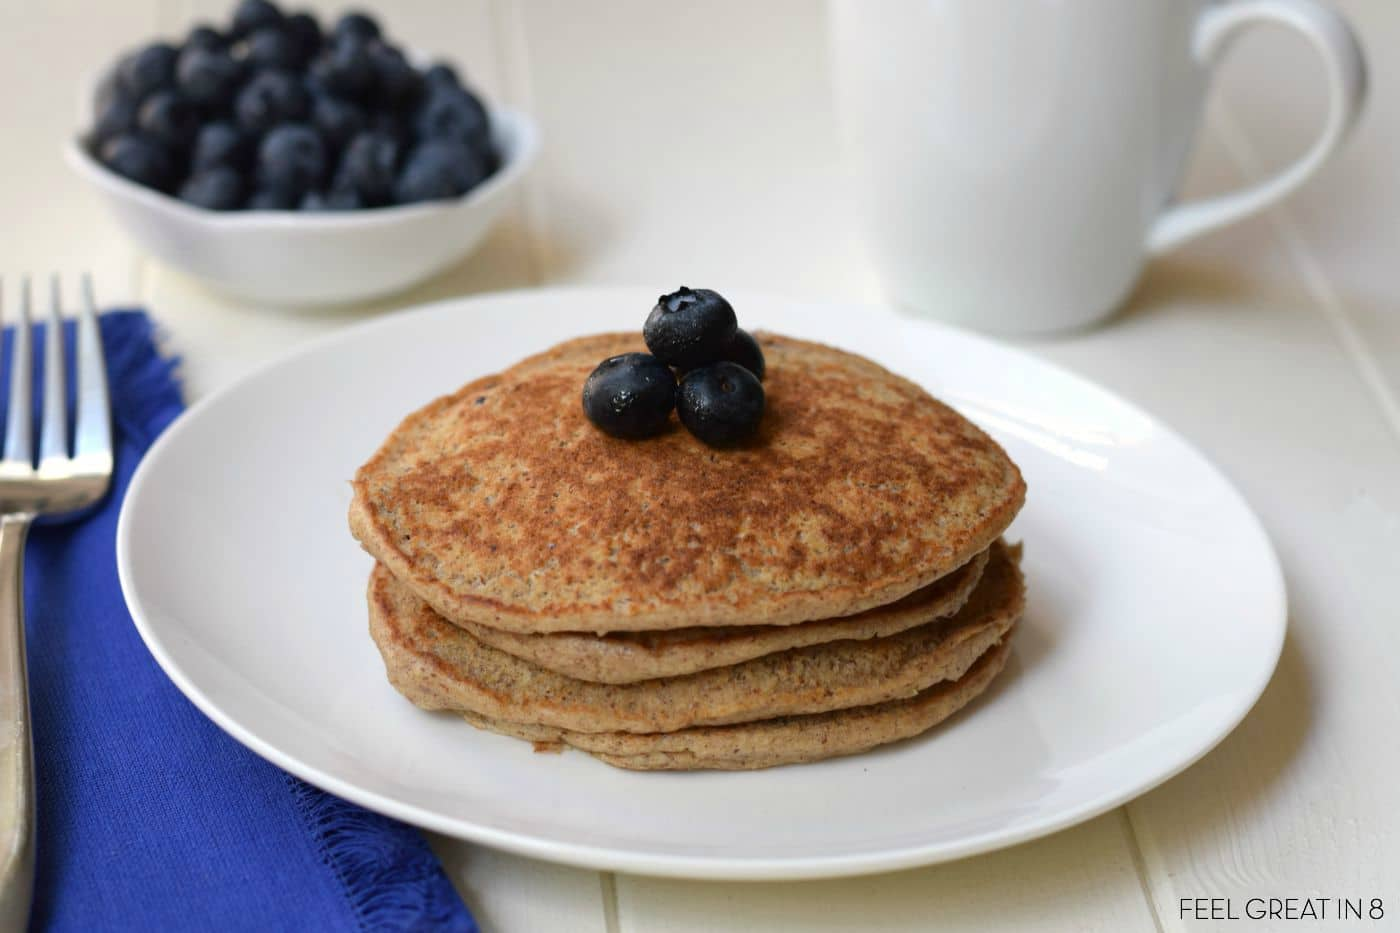 With school starting, you will want these pancakes on your breakfast rotation!